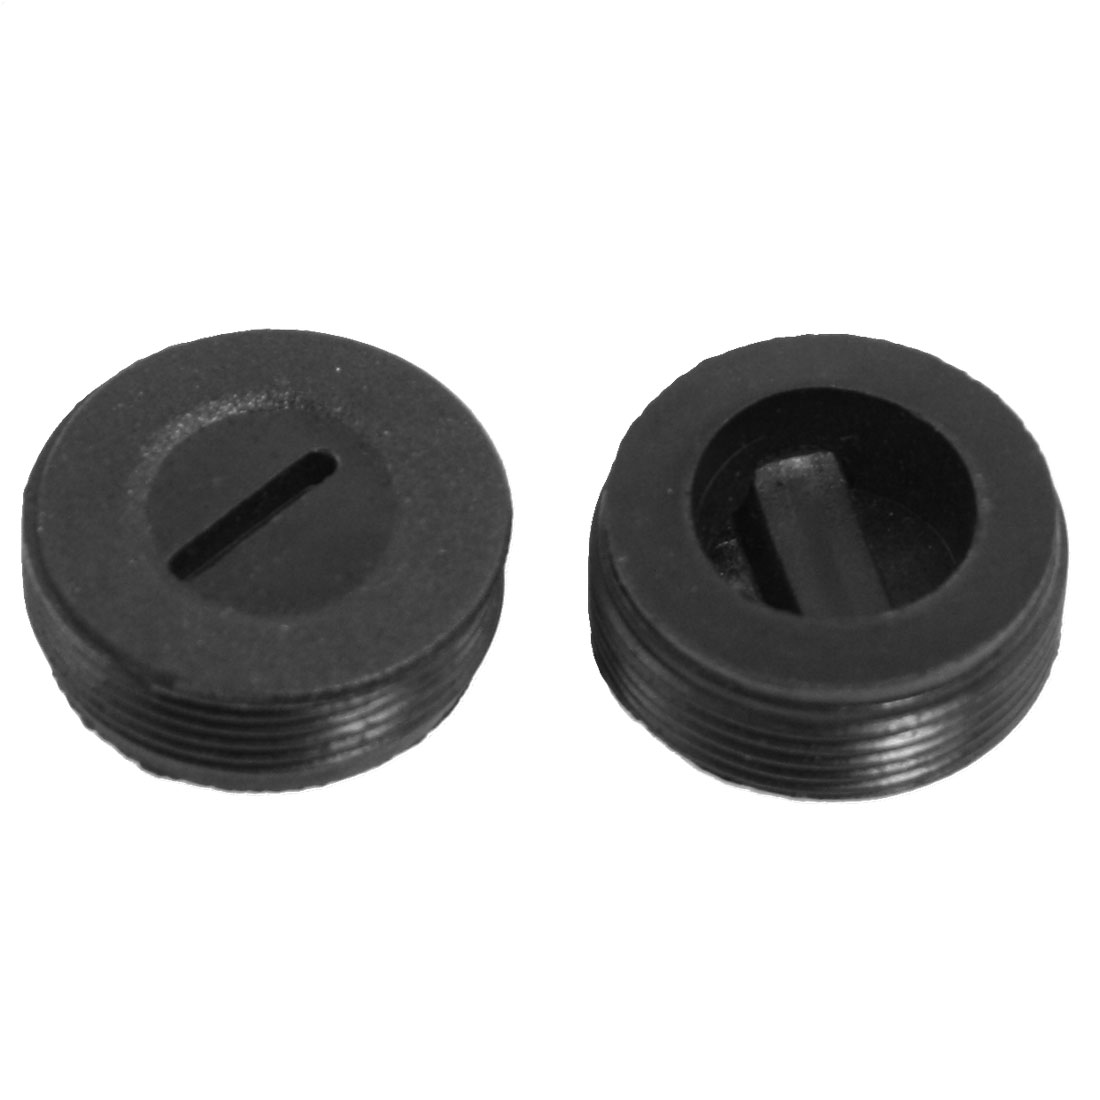 2 Pcs Male Threaded 22mm Diameter Carbon Brush Holder Cap Cover